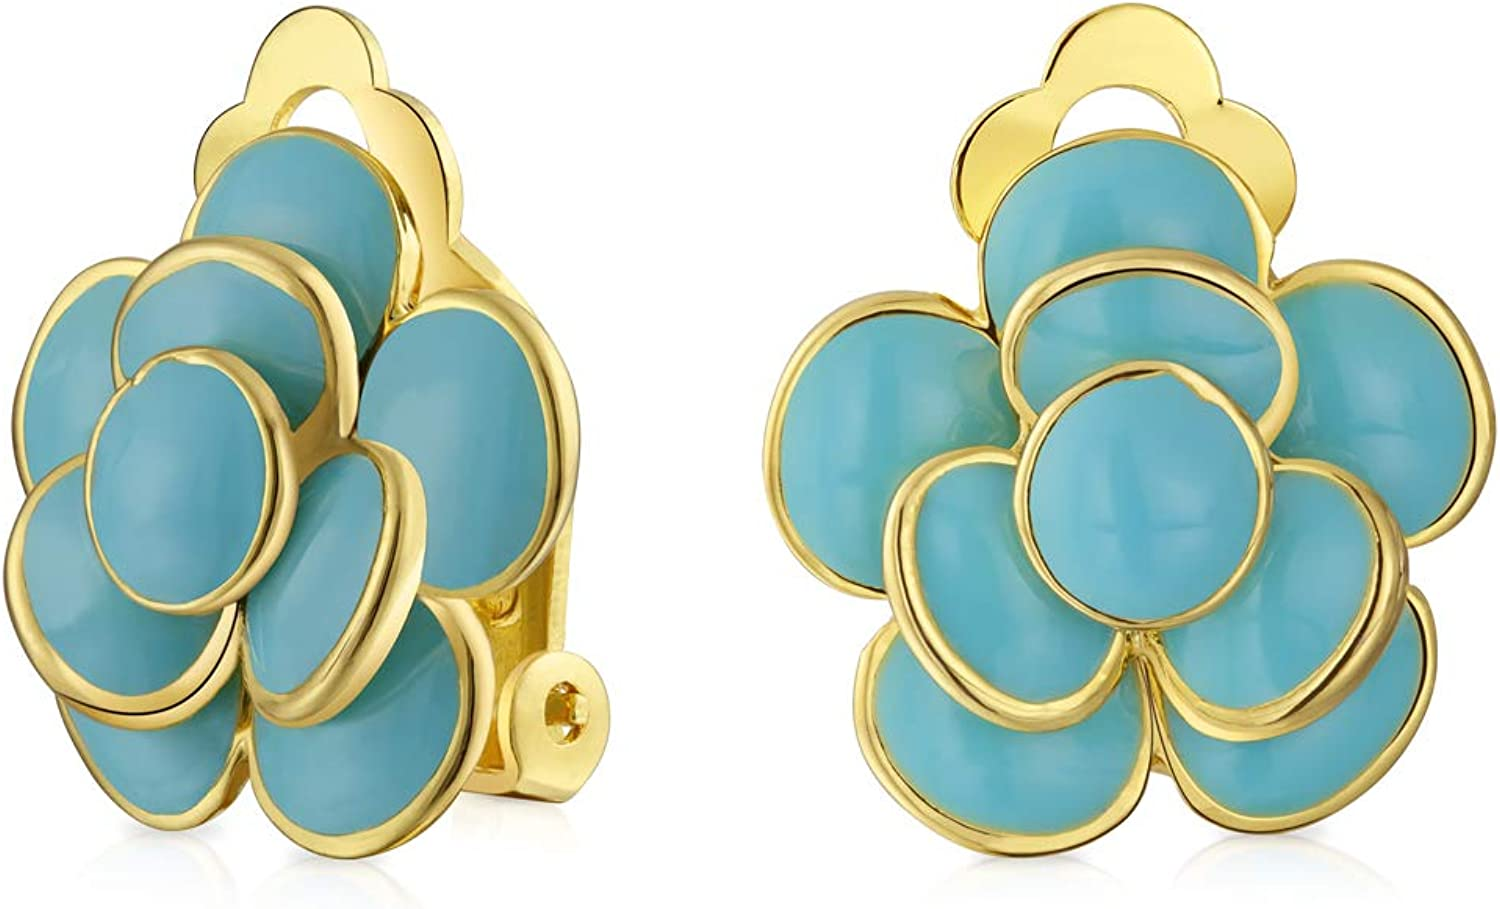 Red or Blue Turquoise Color Enamel Rose Flower Spring Retro Clip On Earrings Button Style For Non Pierced Ears 14K Gold Plated Brass